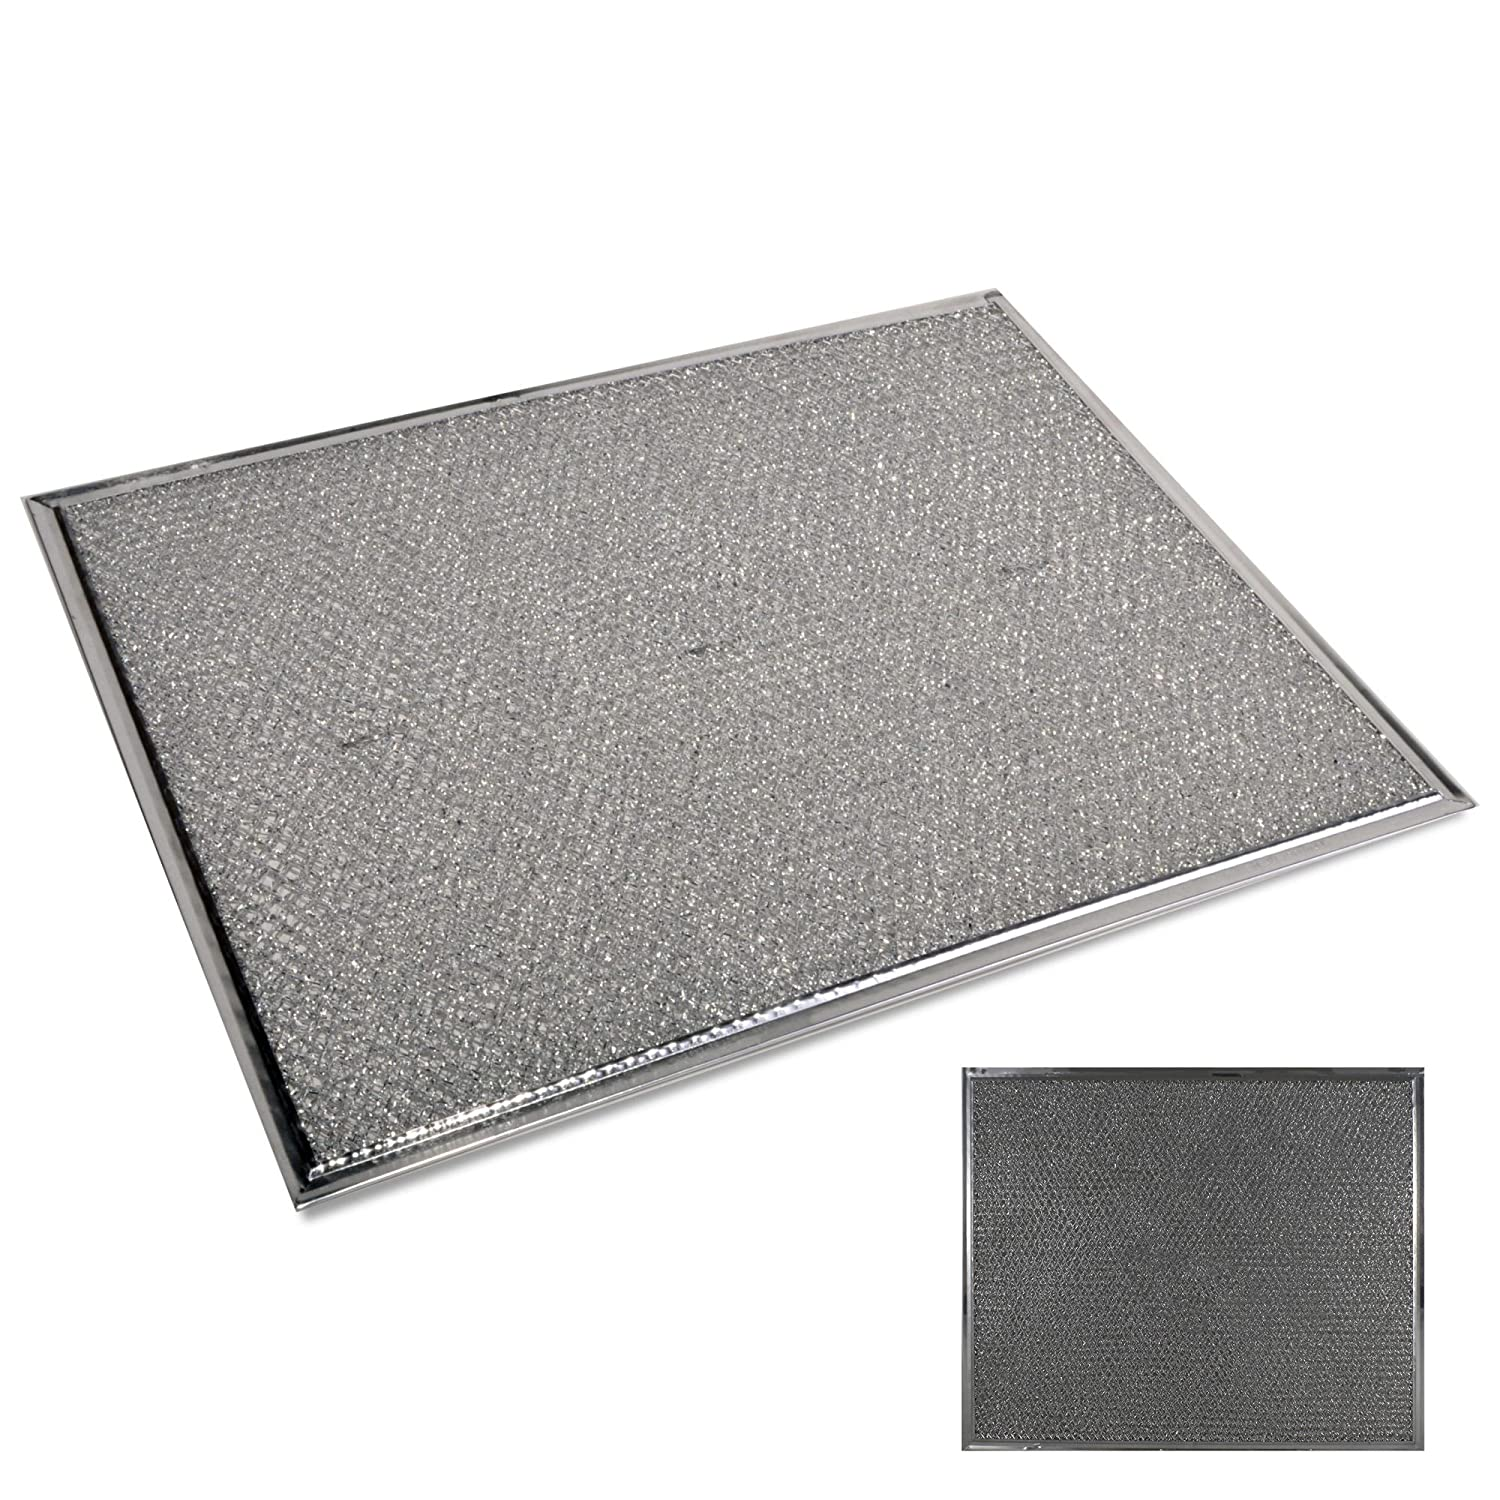 Wonderful Amazon.com: Jenn Air 707929 Range Hood Filter Replacement 11 3/8 X 14 X  3/32: Appliances